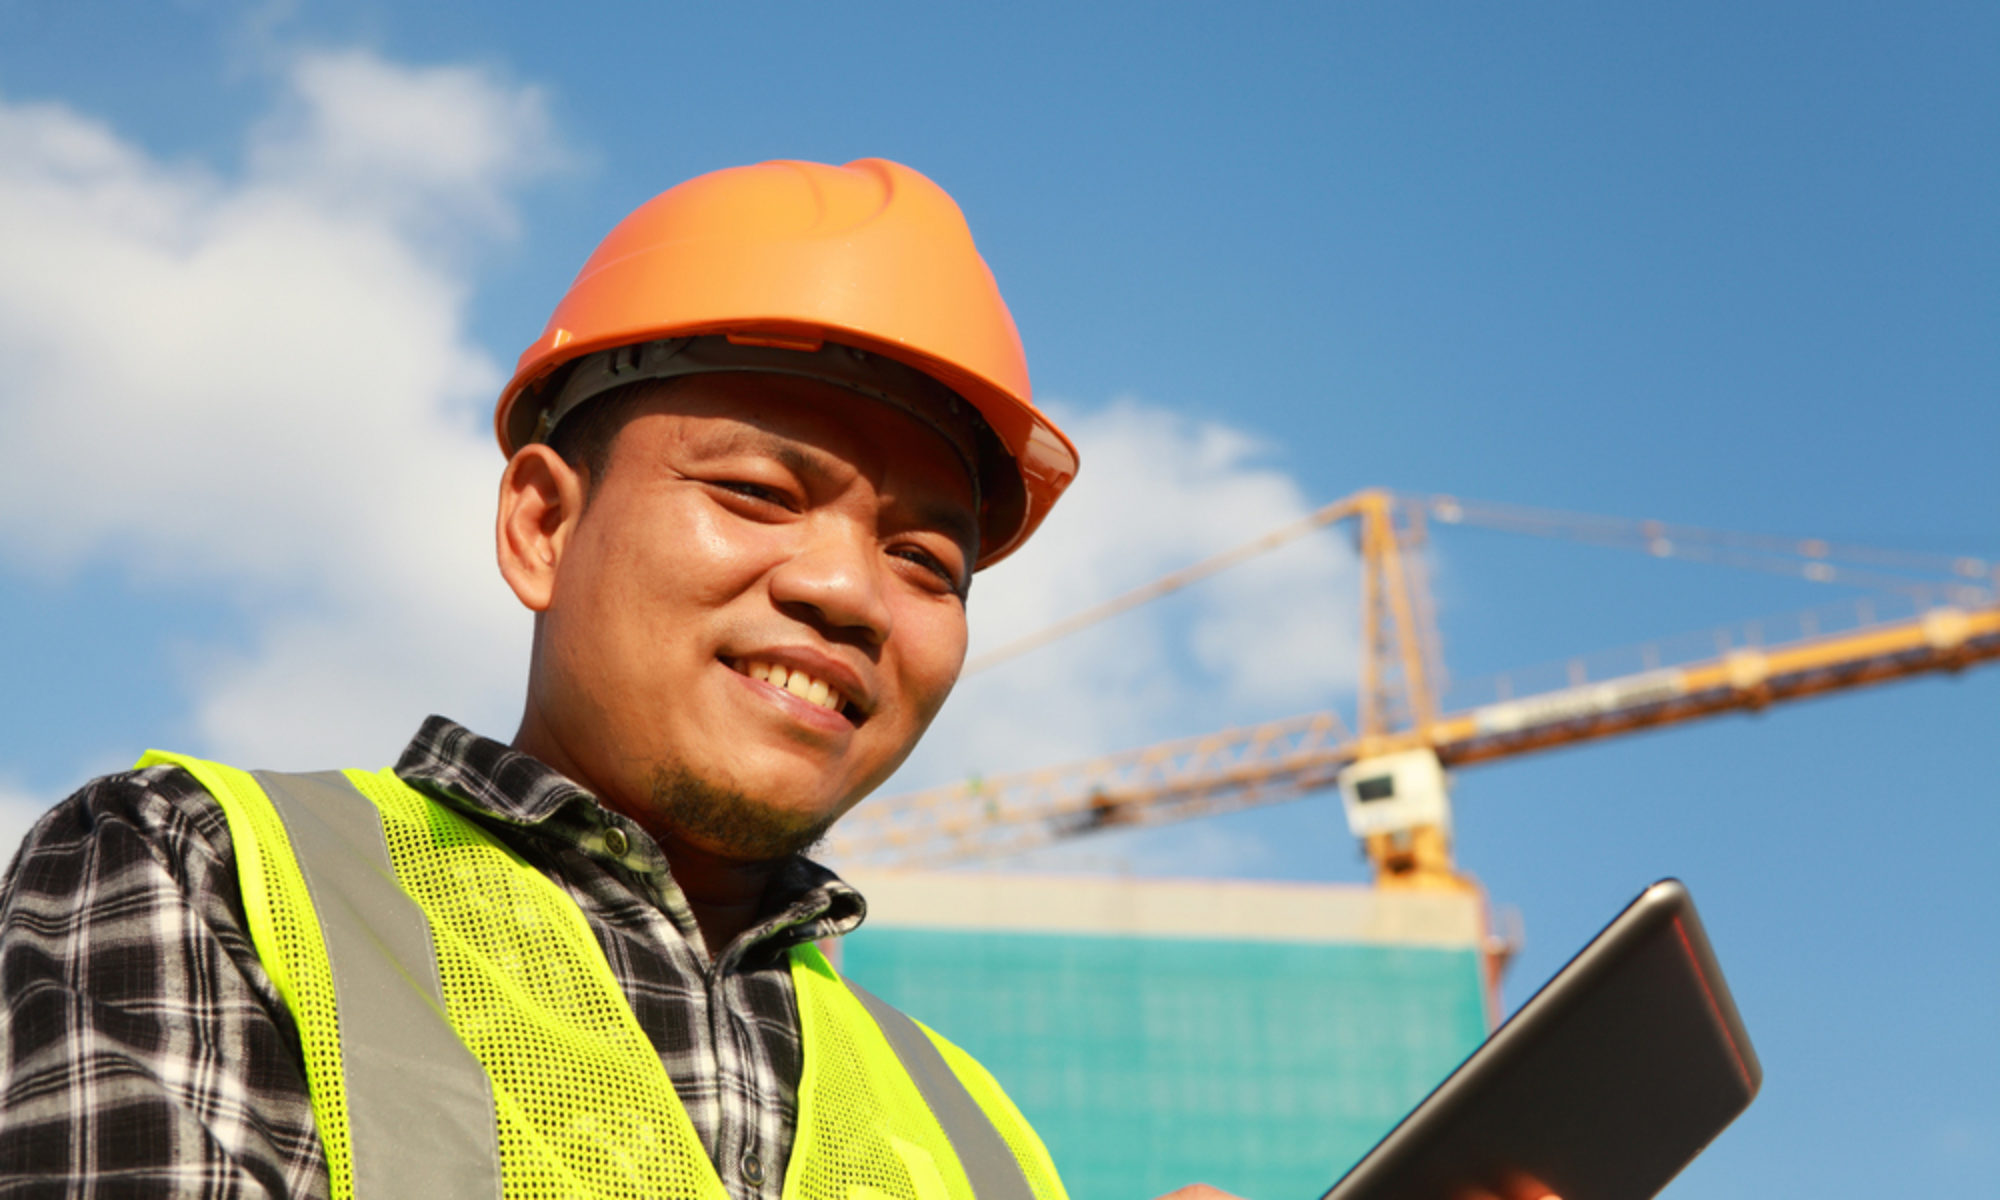 Contruction site worker smiling